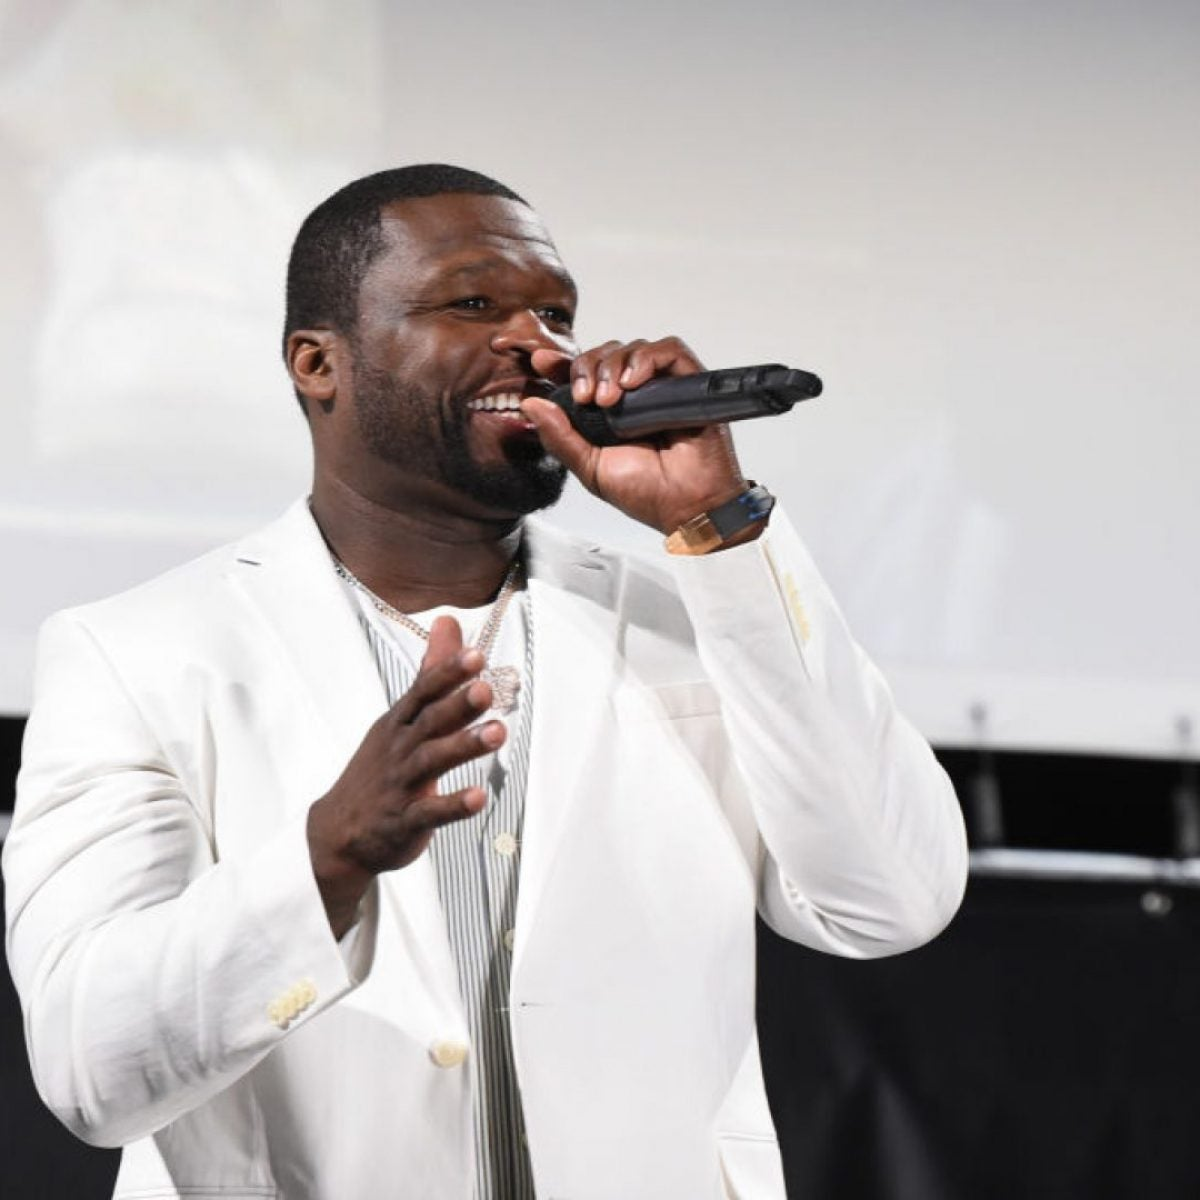 50 Cent On Why Black Artists Being Awarded Matters: 'Your Legacy Won't Reflect What You've Actually Done'